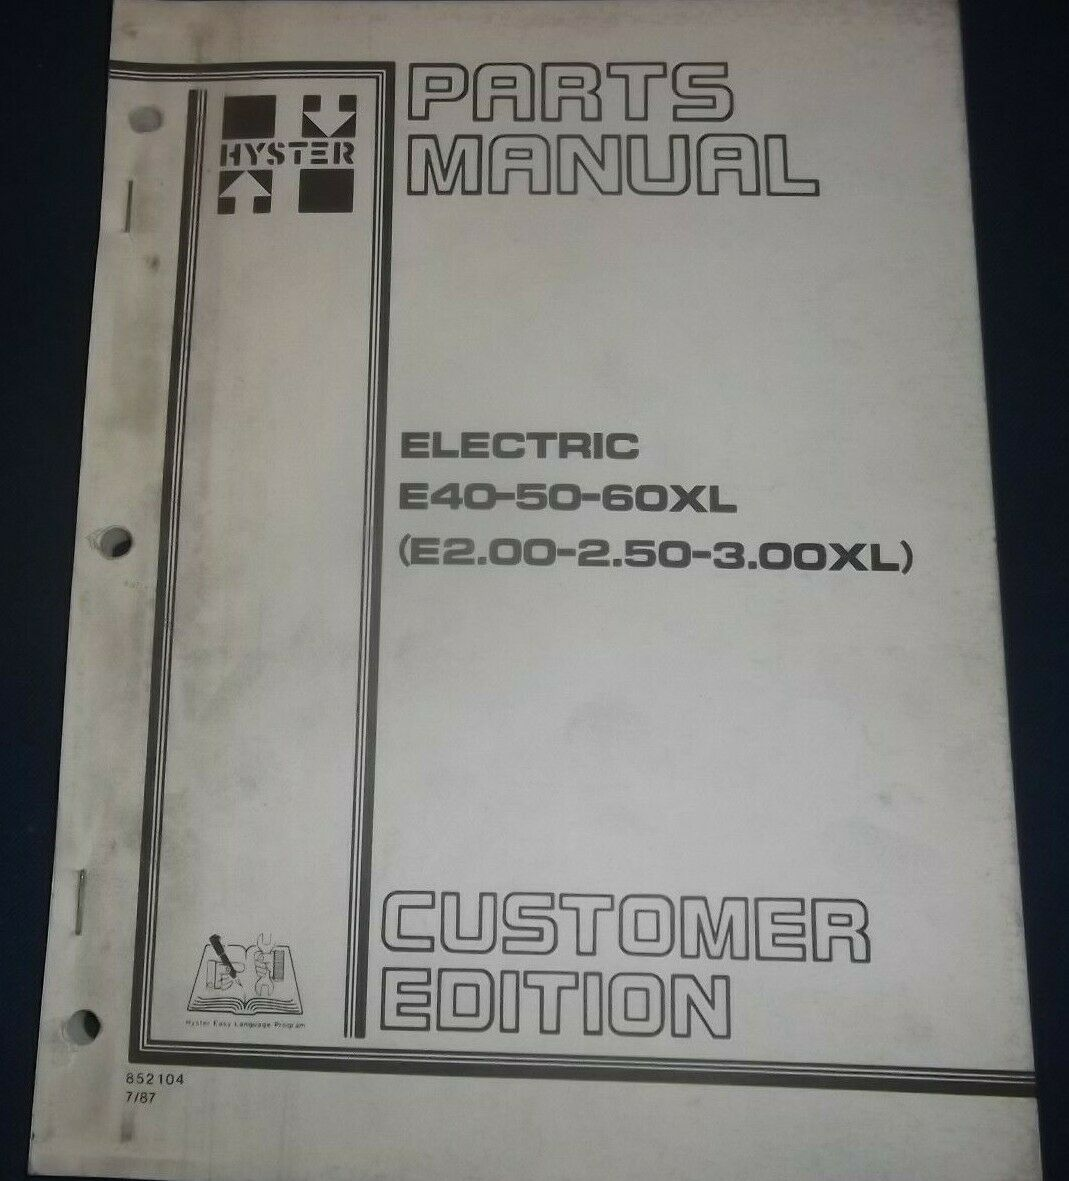 Hyster e40xl e50xl e60xl electric forklift lift truck parts manual hyster e40xl e50xl e60xl electric forklift lift truck parts manual book 1 of 4only 1 available fandeluxe Image collections